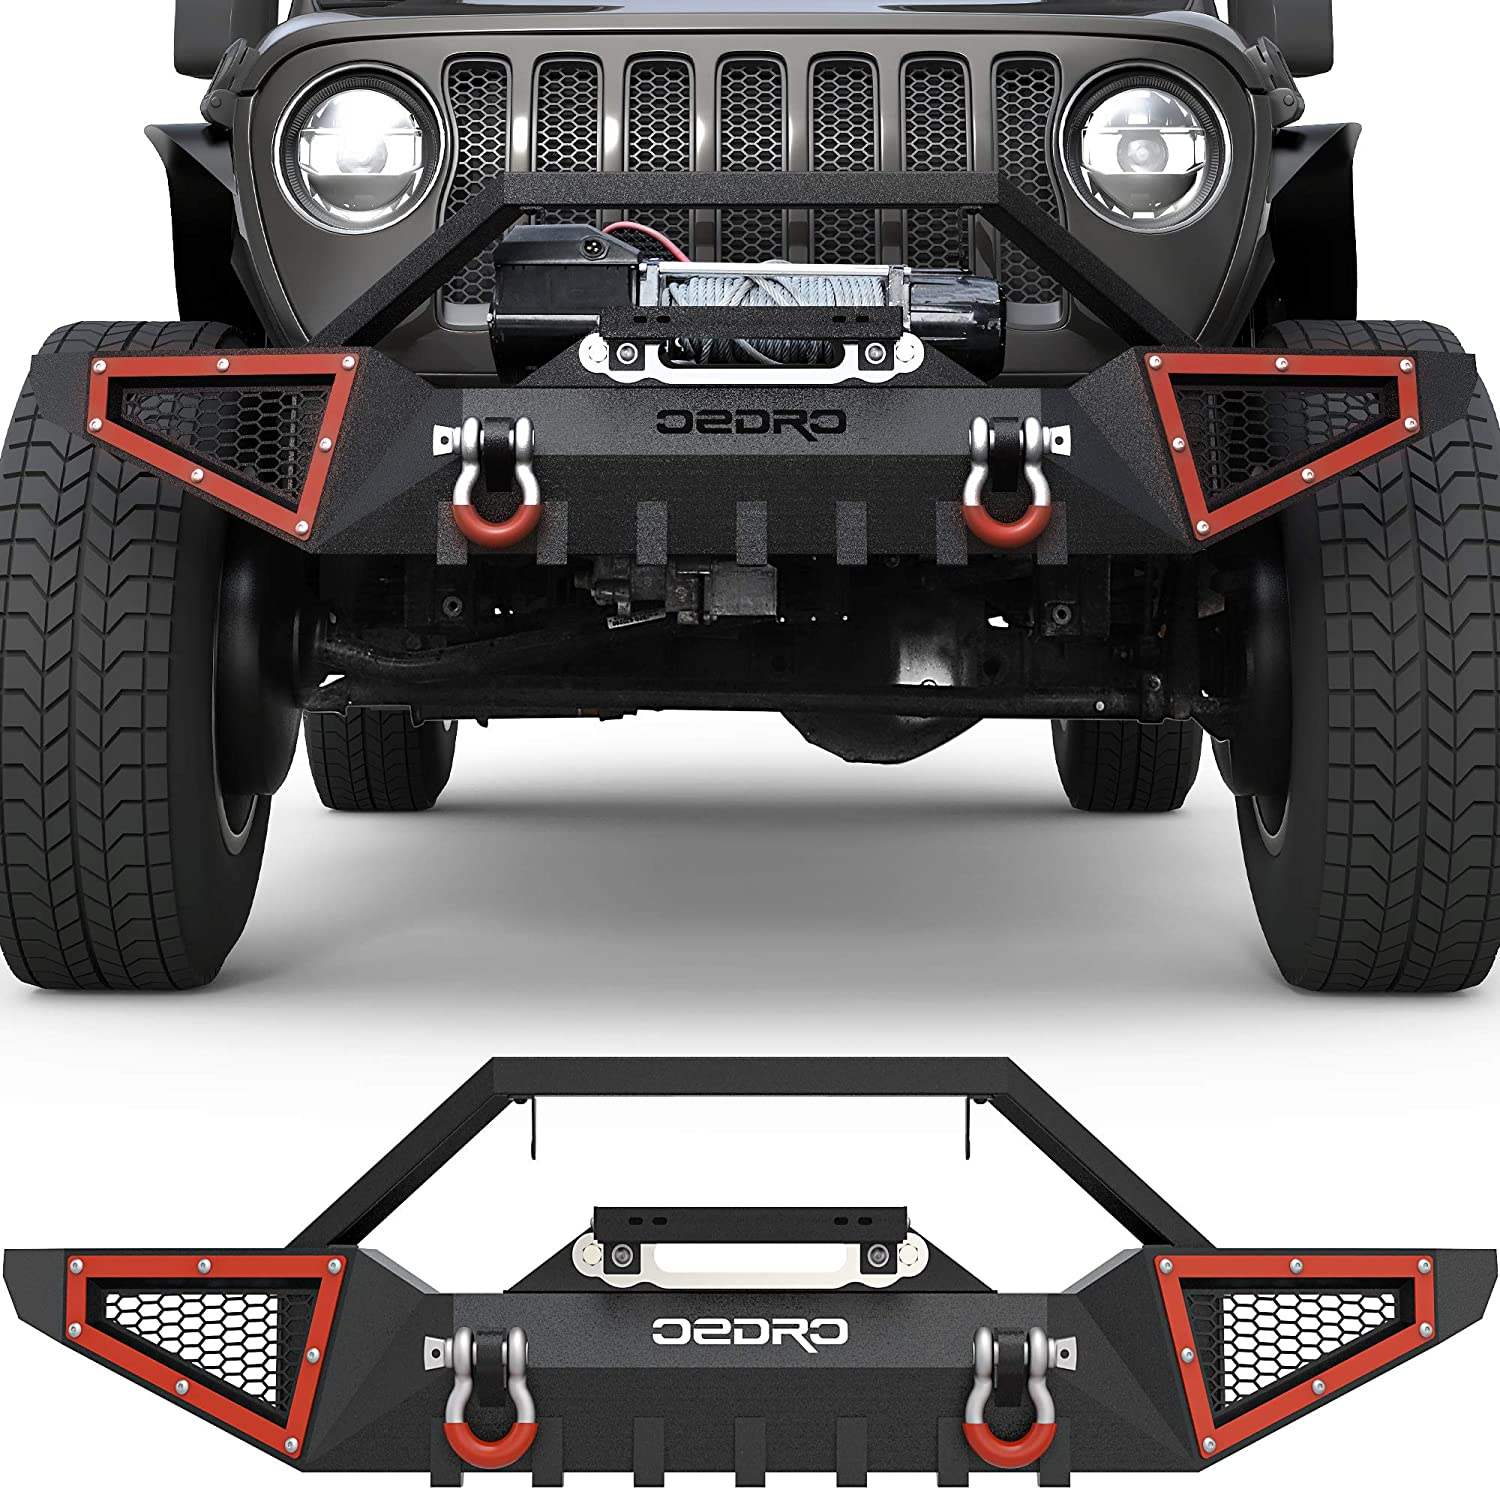 Best Front Bumper for Jeep Gladiator